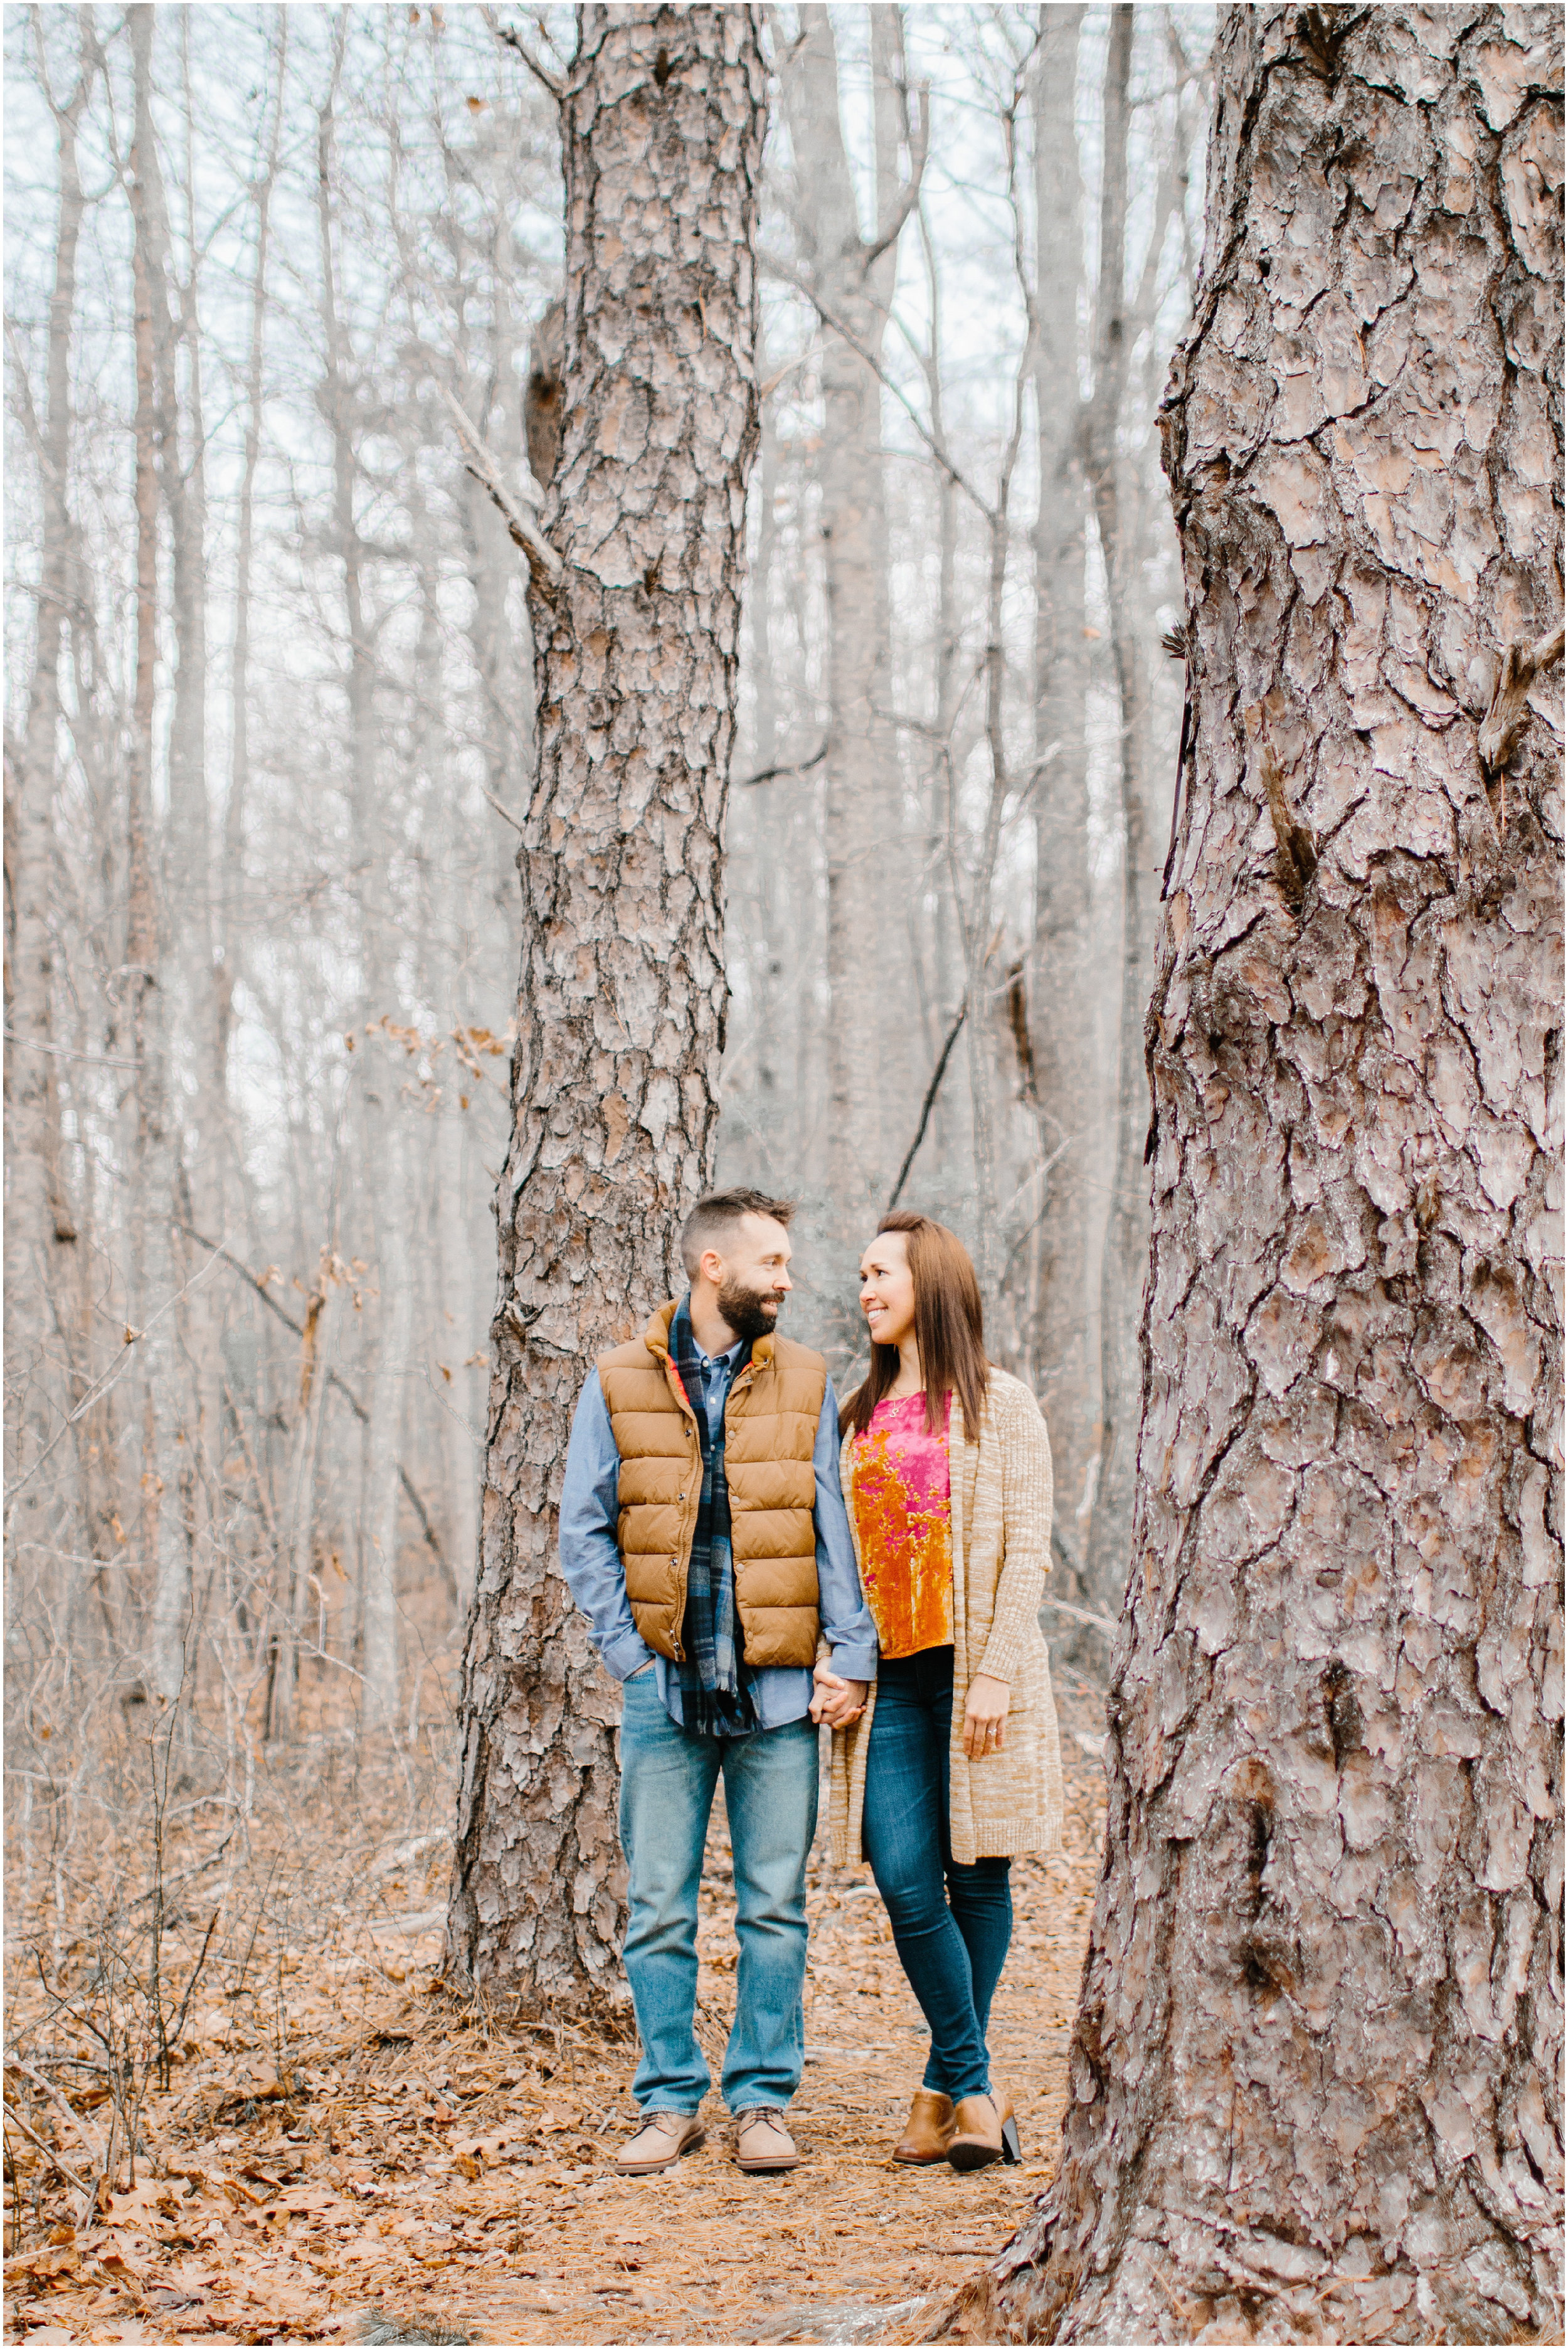 Asheville_Mountain_Engagement_Session_Blue_Ridge_Parkway-8.jpg